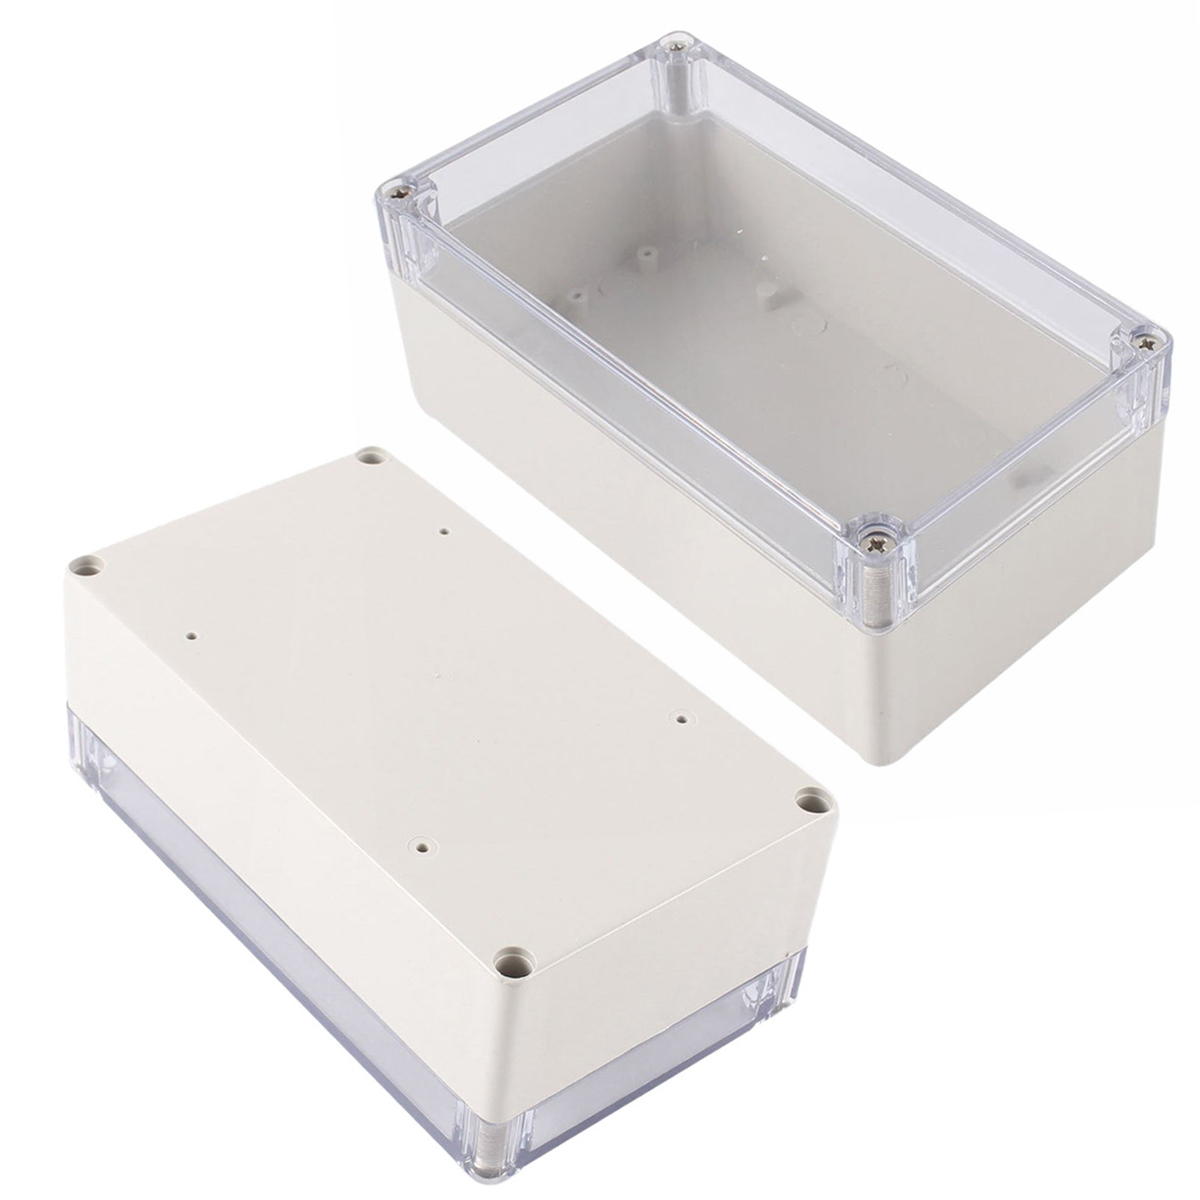 1pc Clear Waterproof Enclosure Case Cover High Quality Plastic Electronic Project Instrument Box 158mmx90mmx60mm